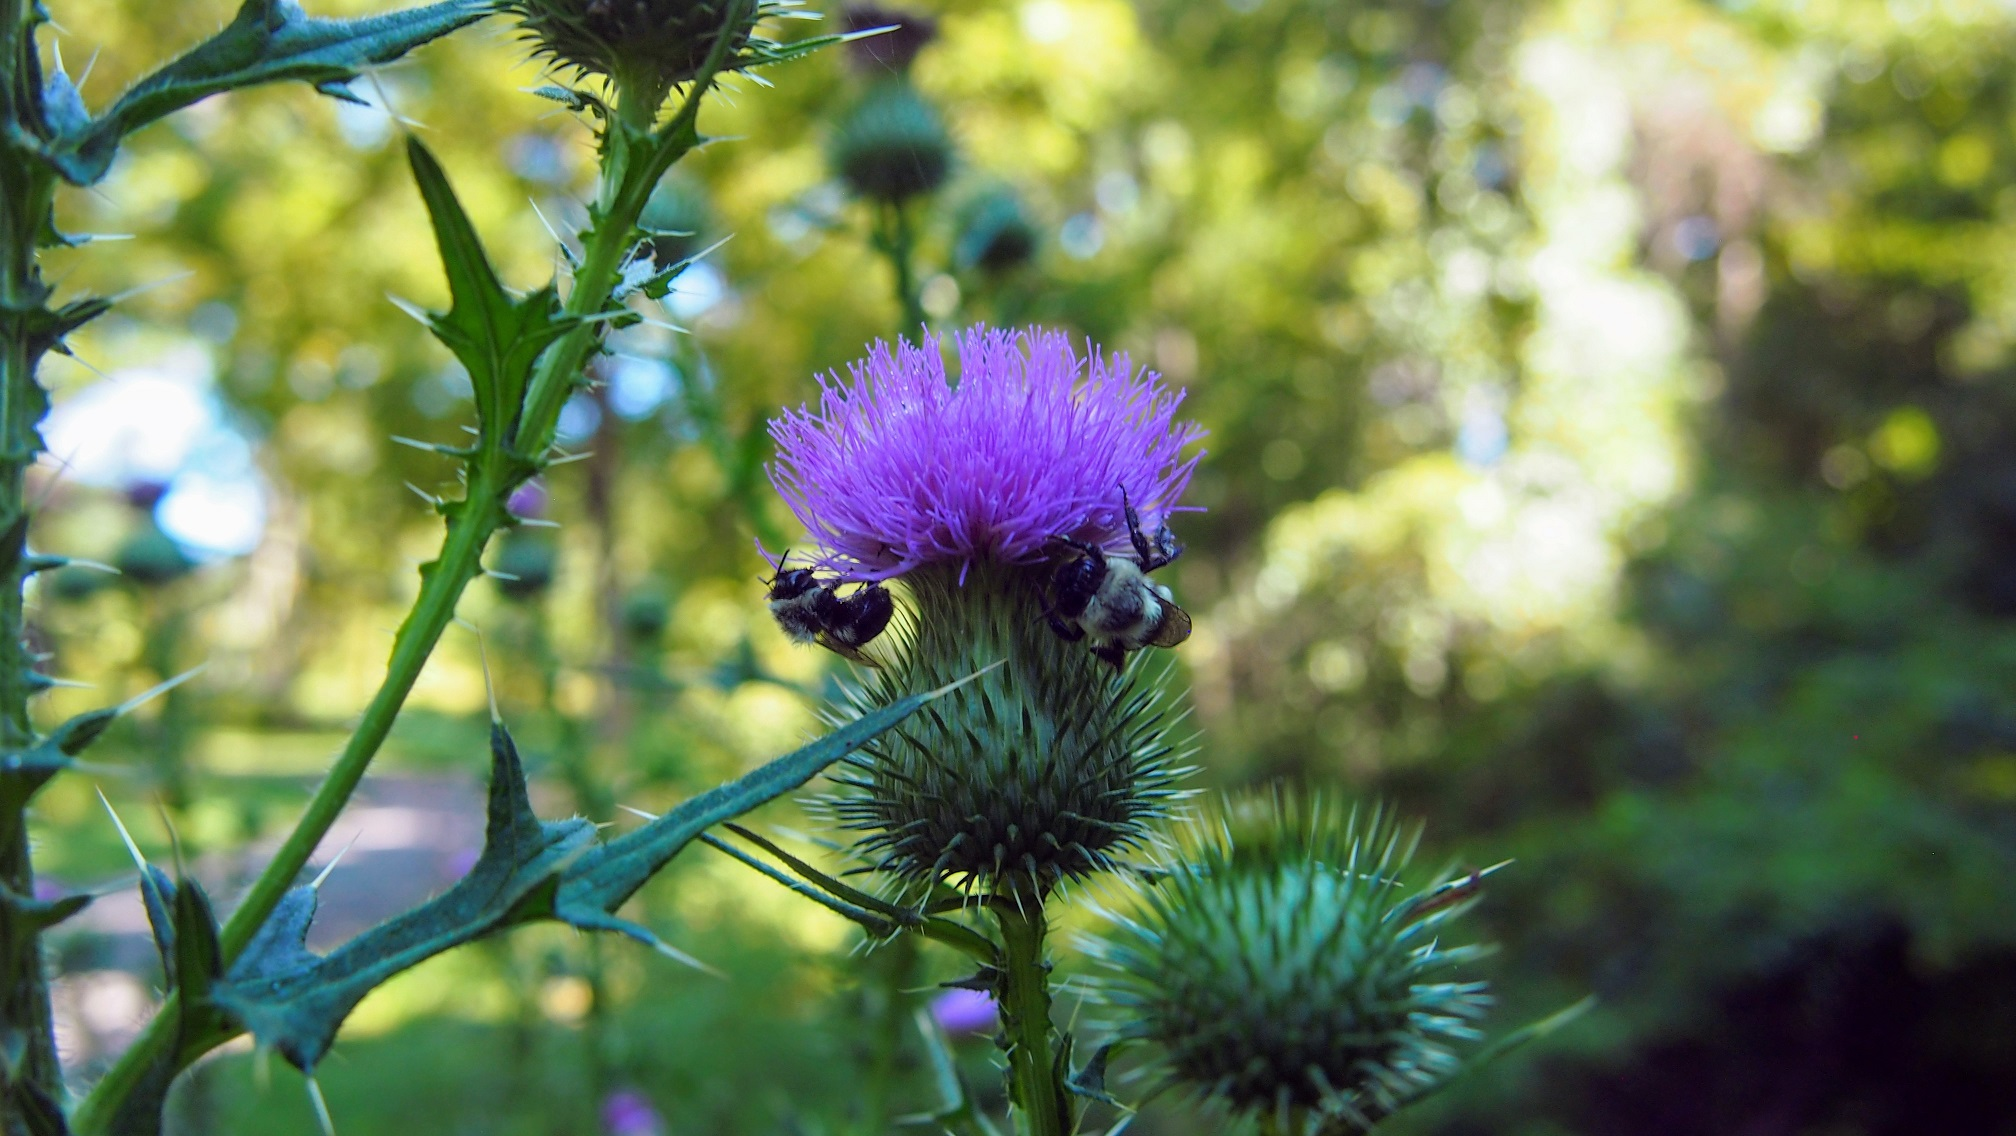 Bees sitting on a thistle flower.